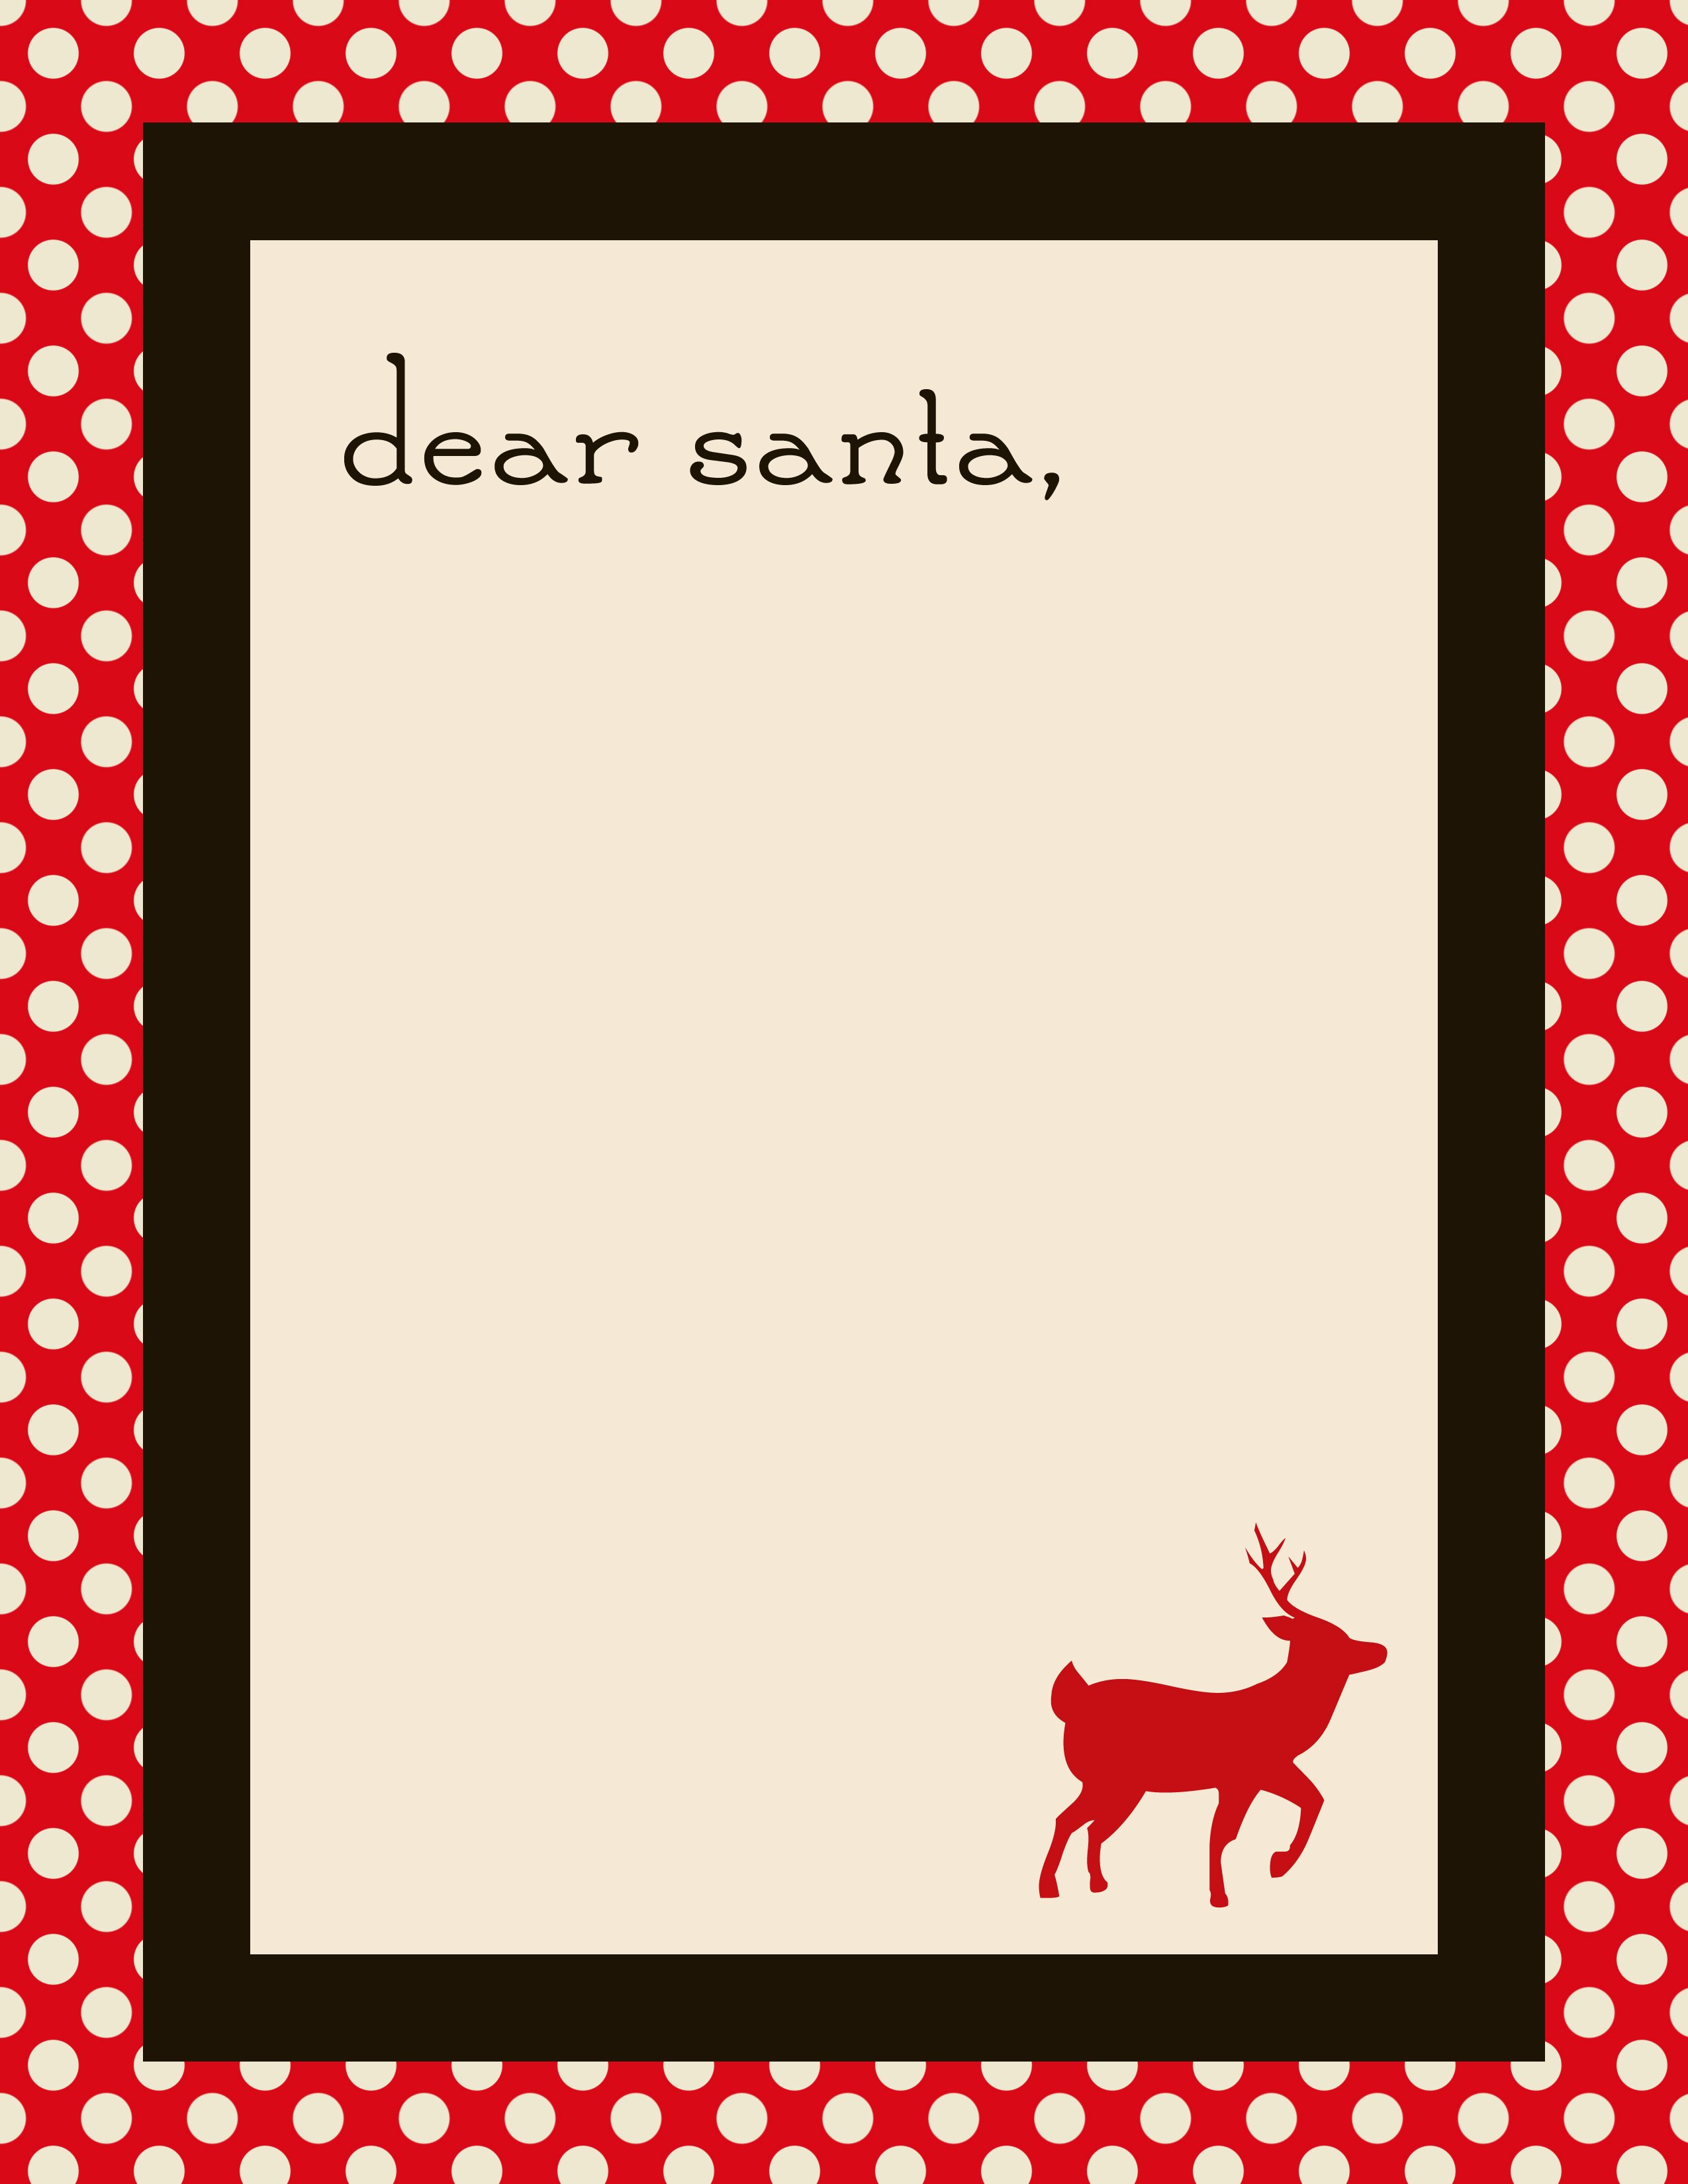 Christmas Letter Template Free Inspirational Free Santa Letter Templates